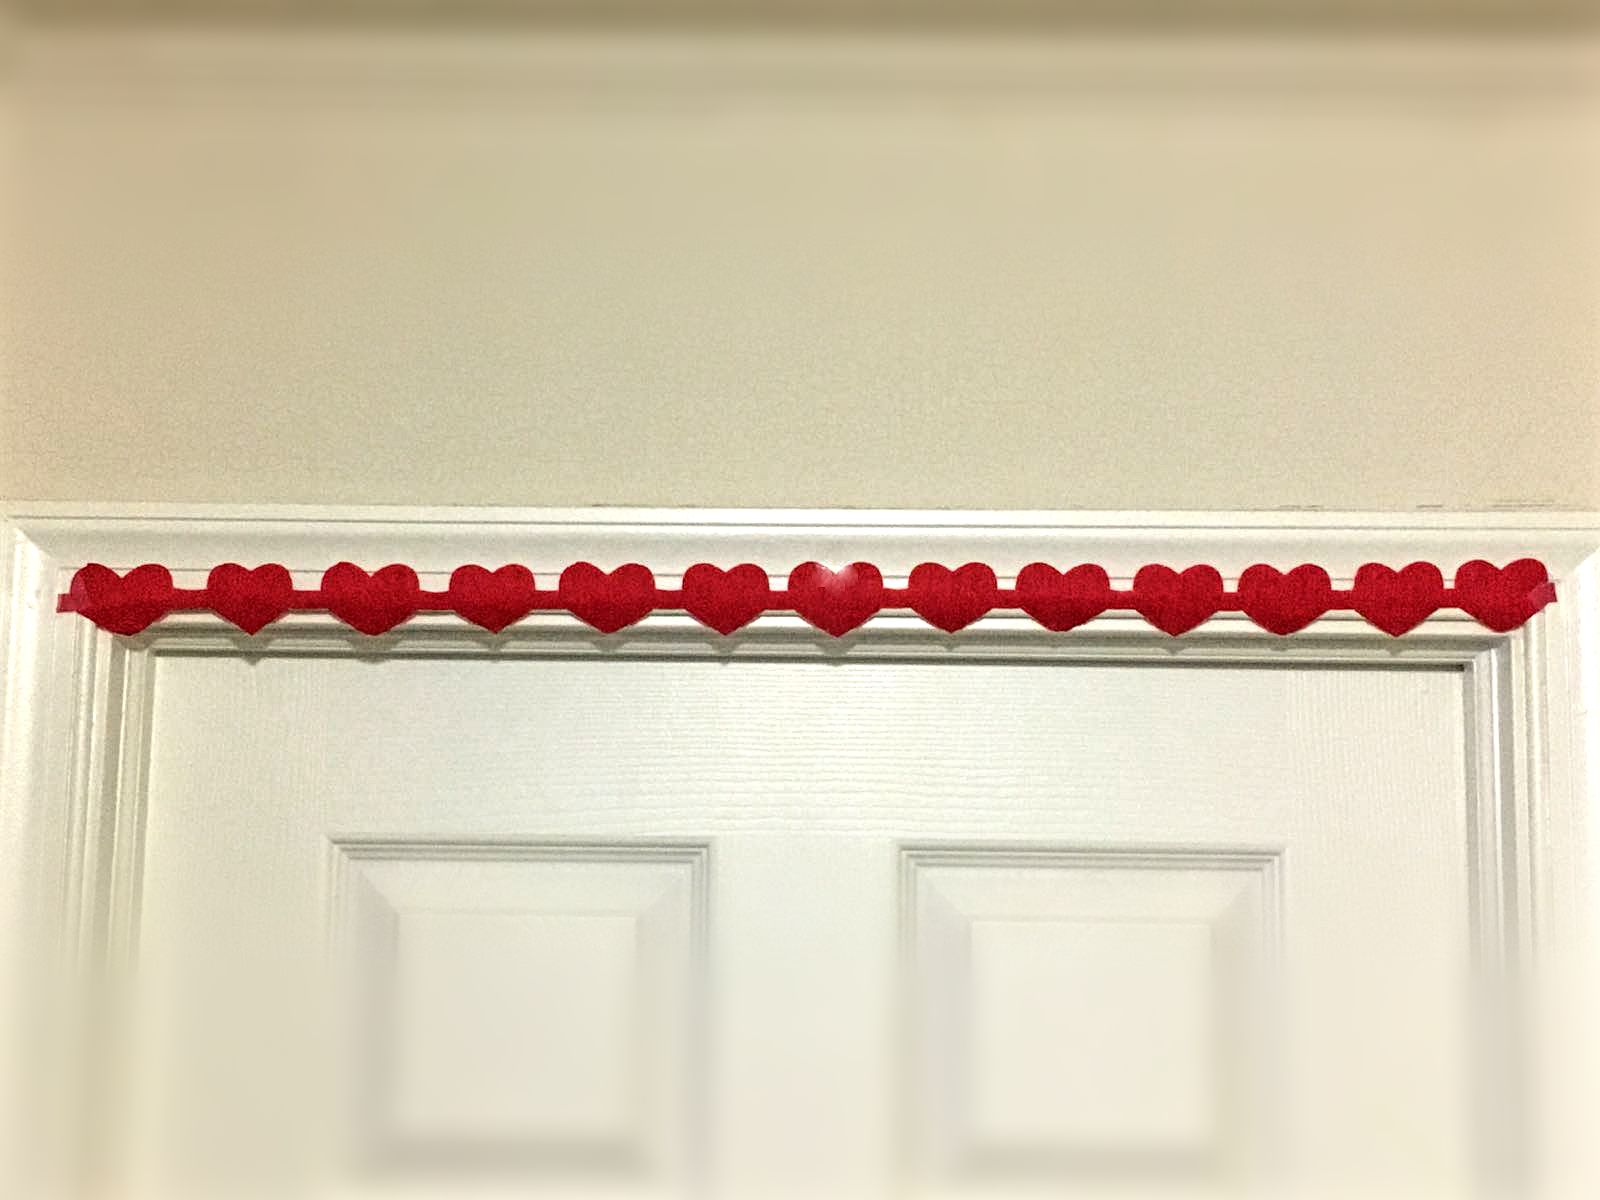 Picture of DIY Crepe Streamer Garland for Valentine's Day